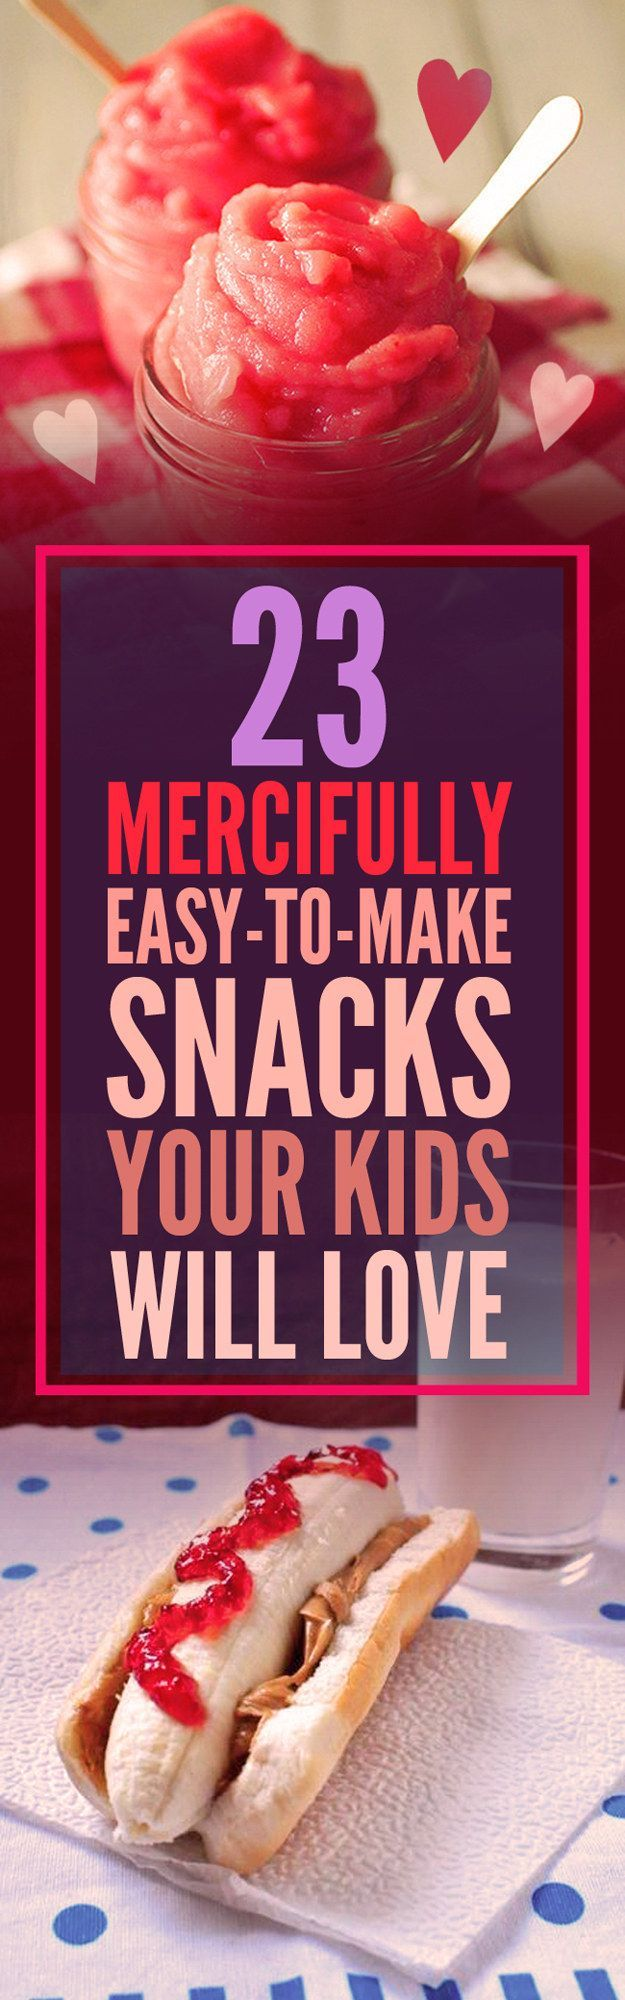 23 Mercifully Easy-To-Make Snacks Your Kids Will Love (scheduled via http://www.tailwindapp.com?utm_source=pinterest&utm_medium=twpin&utm_content=post8795936&utm_campaign=scheduler_attribution)